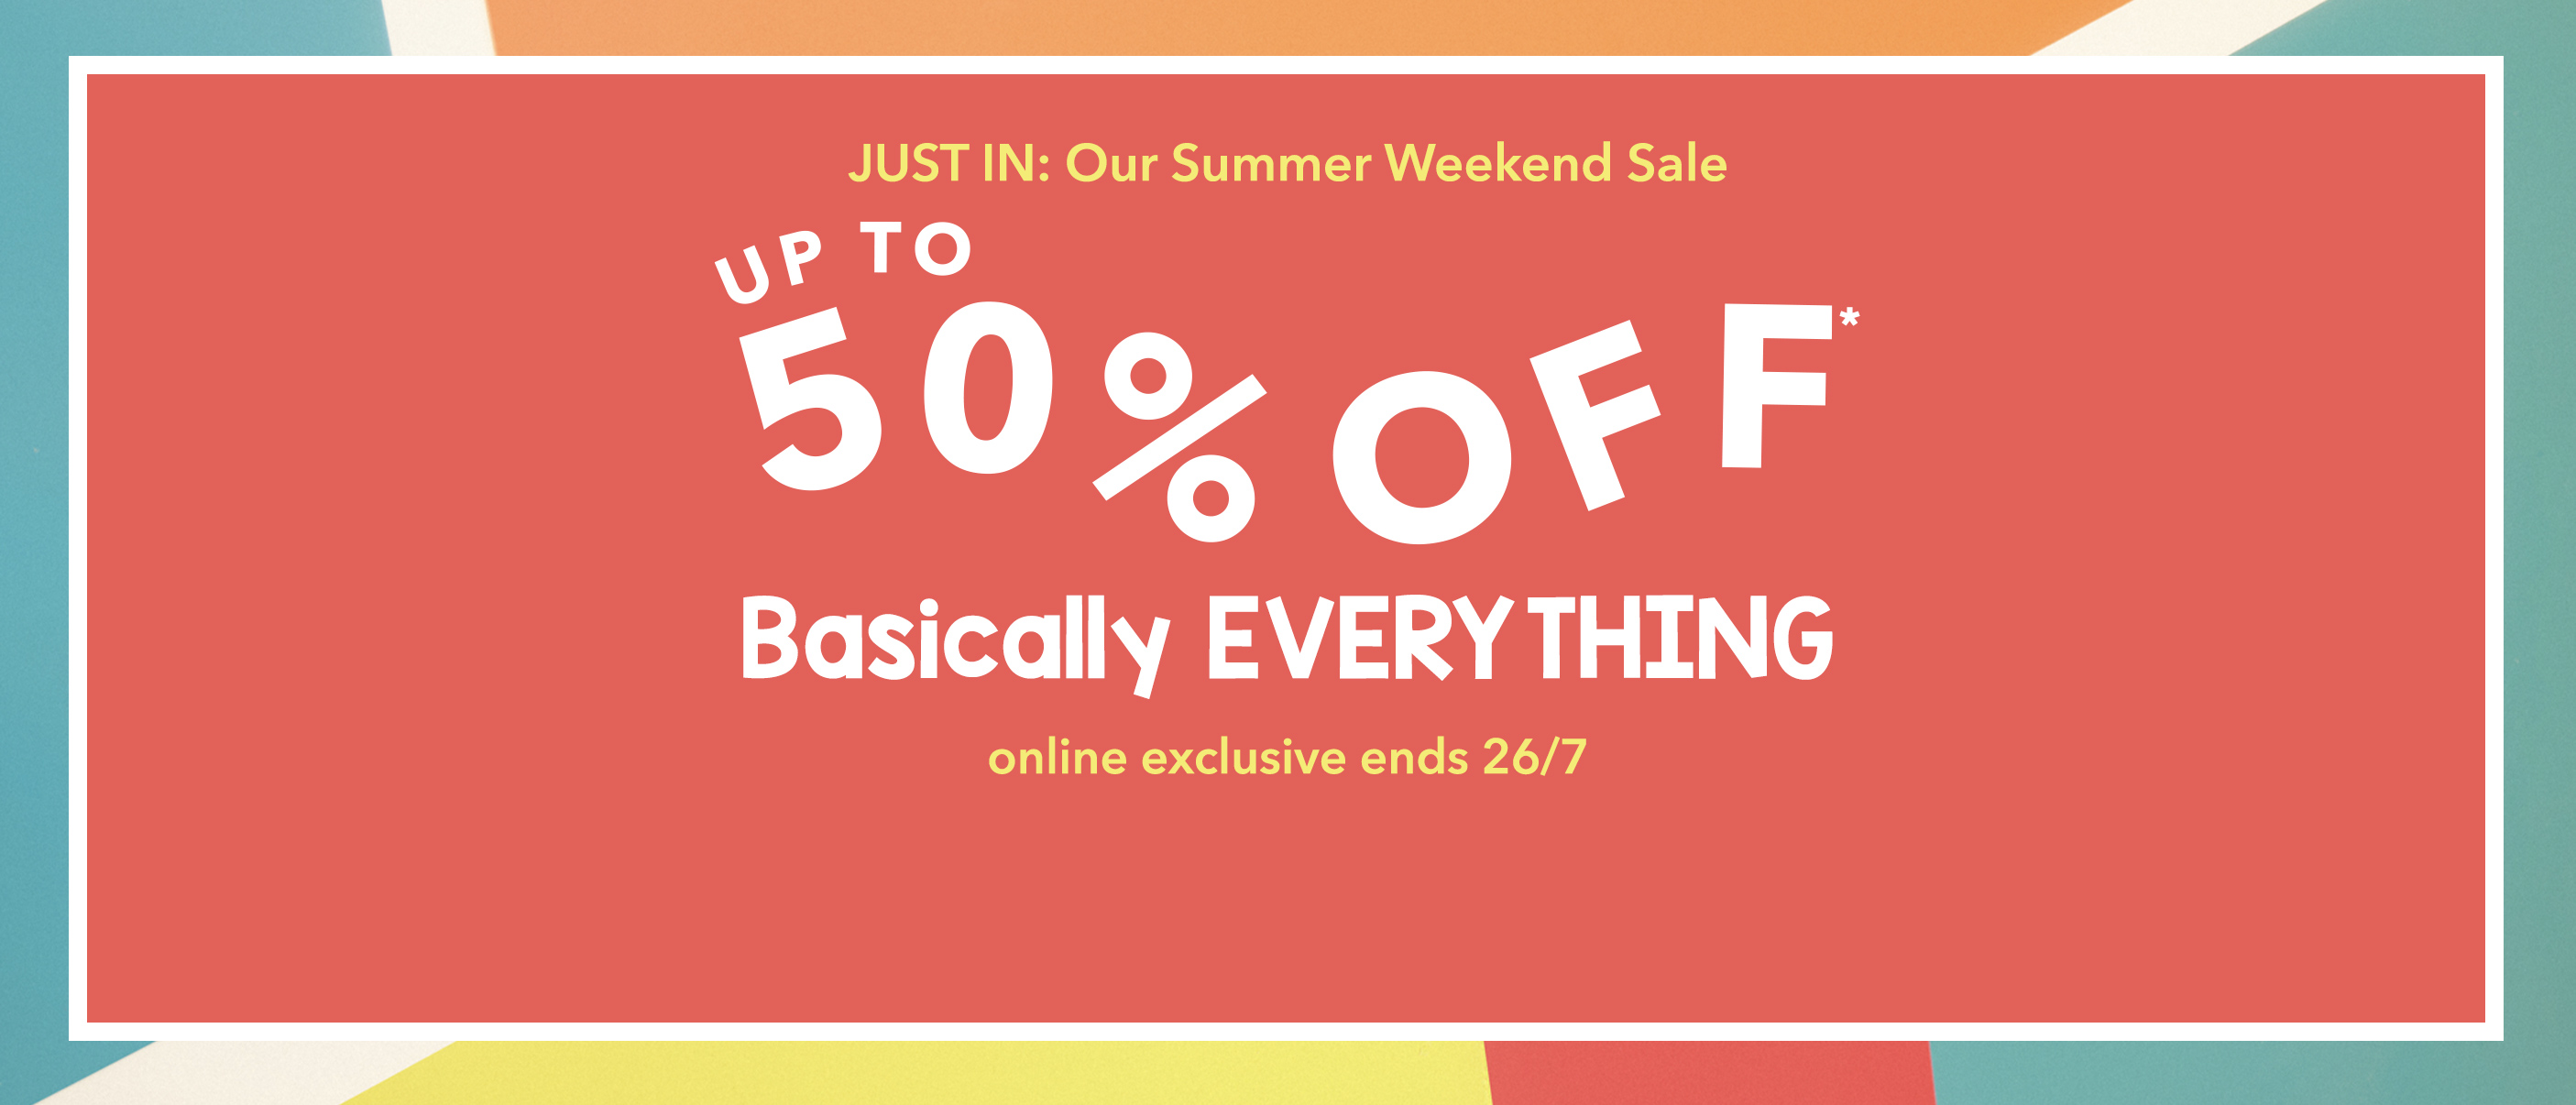 Announcing: Our Big Weekend Sale! Up to 50% Off Almost Everything. Online Only.